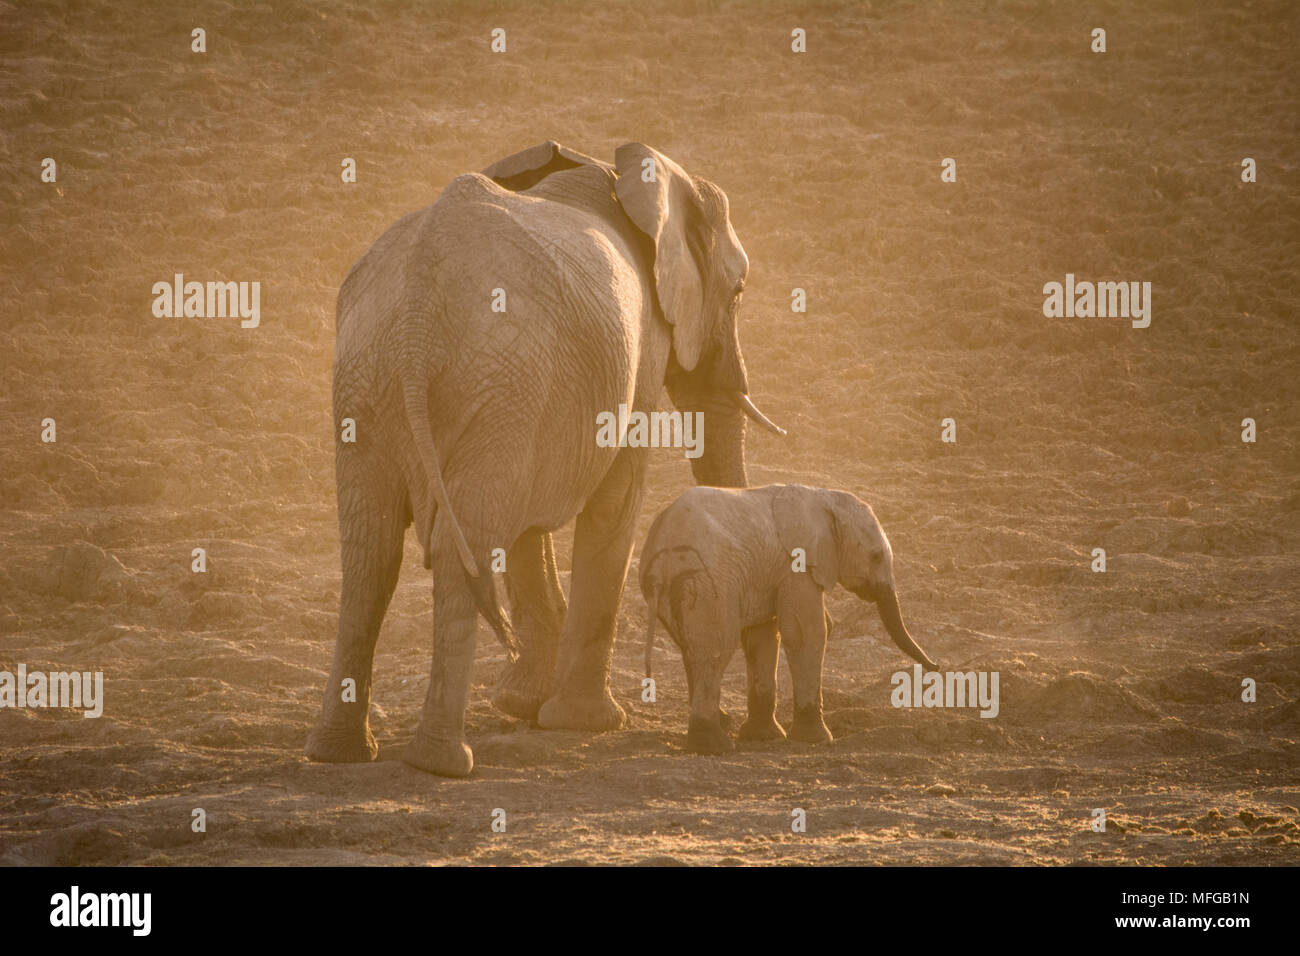 Mother and calf elephant walking off into the setting sun - Stock Image